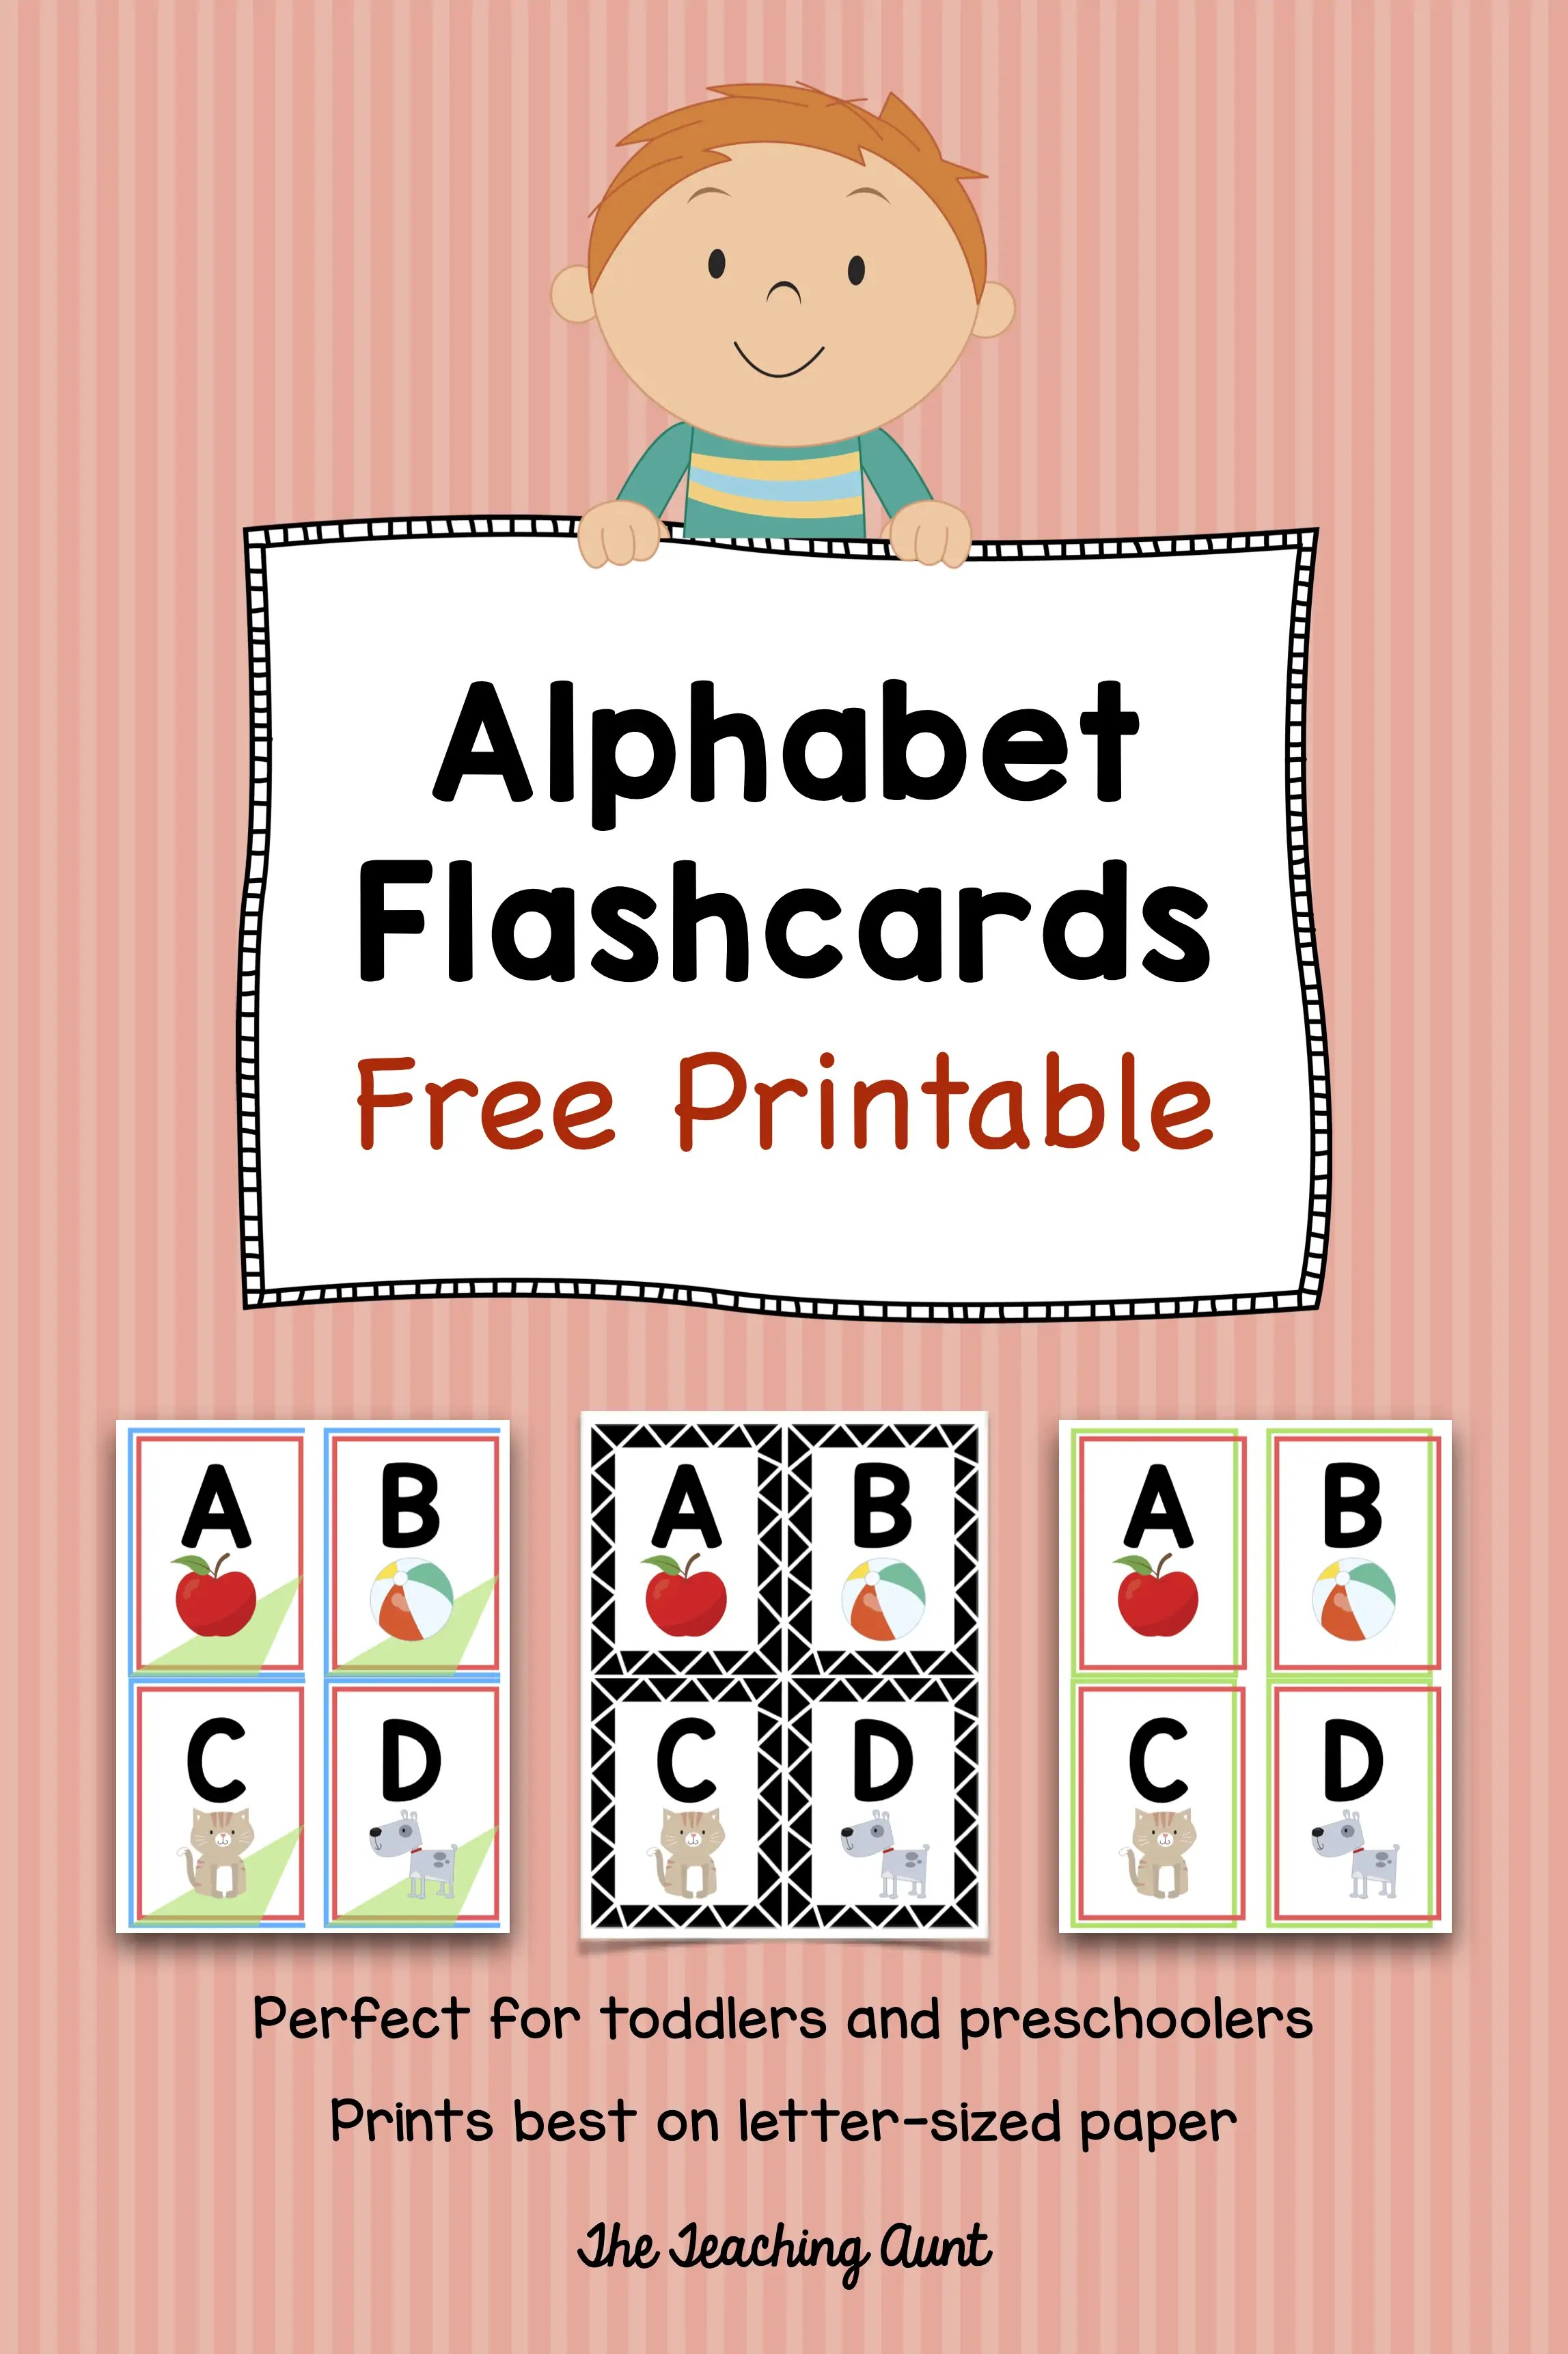 graphic about Printable Alphabet Flashcards Without Pictures identified as Alphabet Flashcards Totally free Printable - The Education Aunt